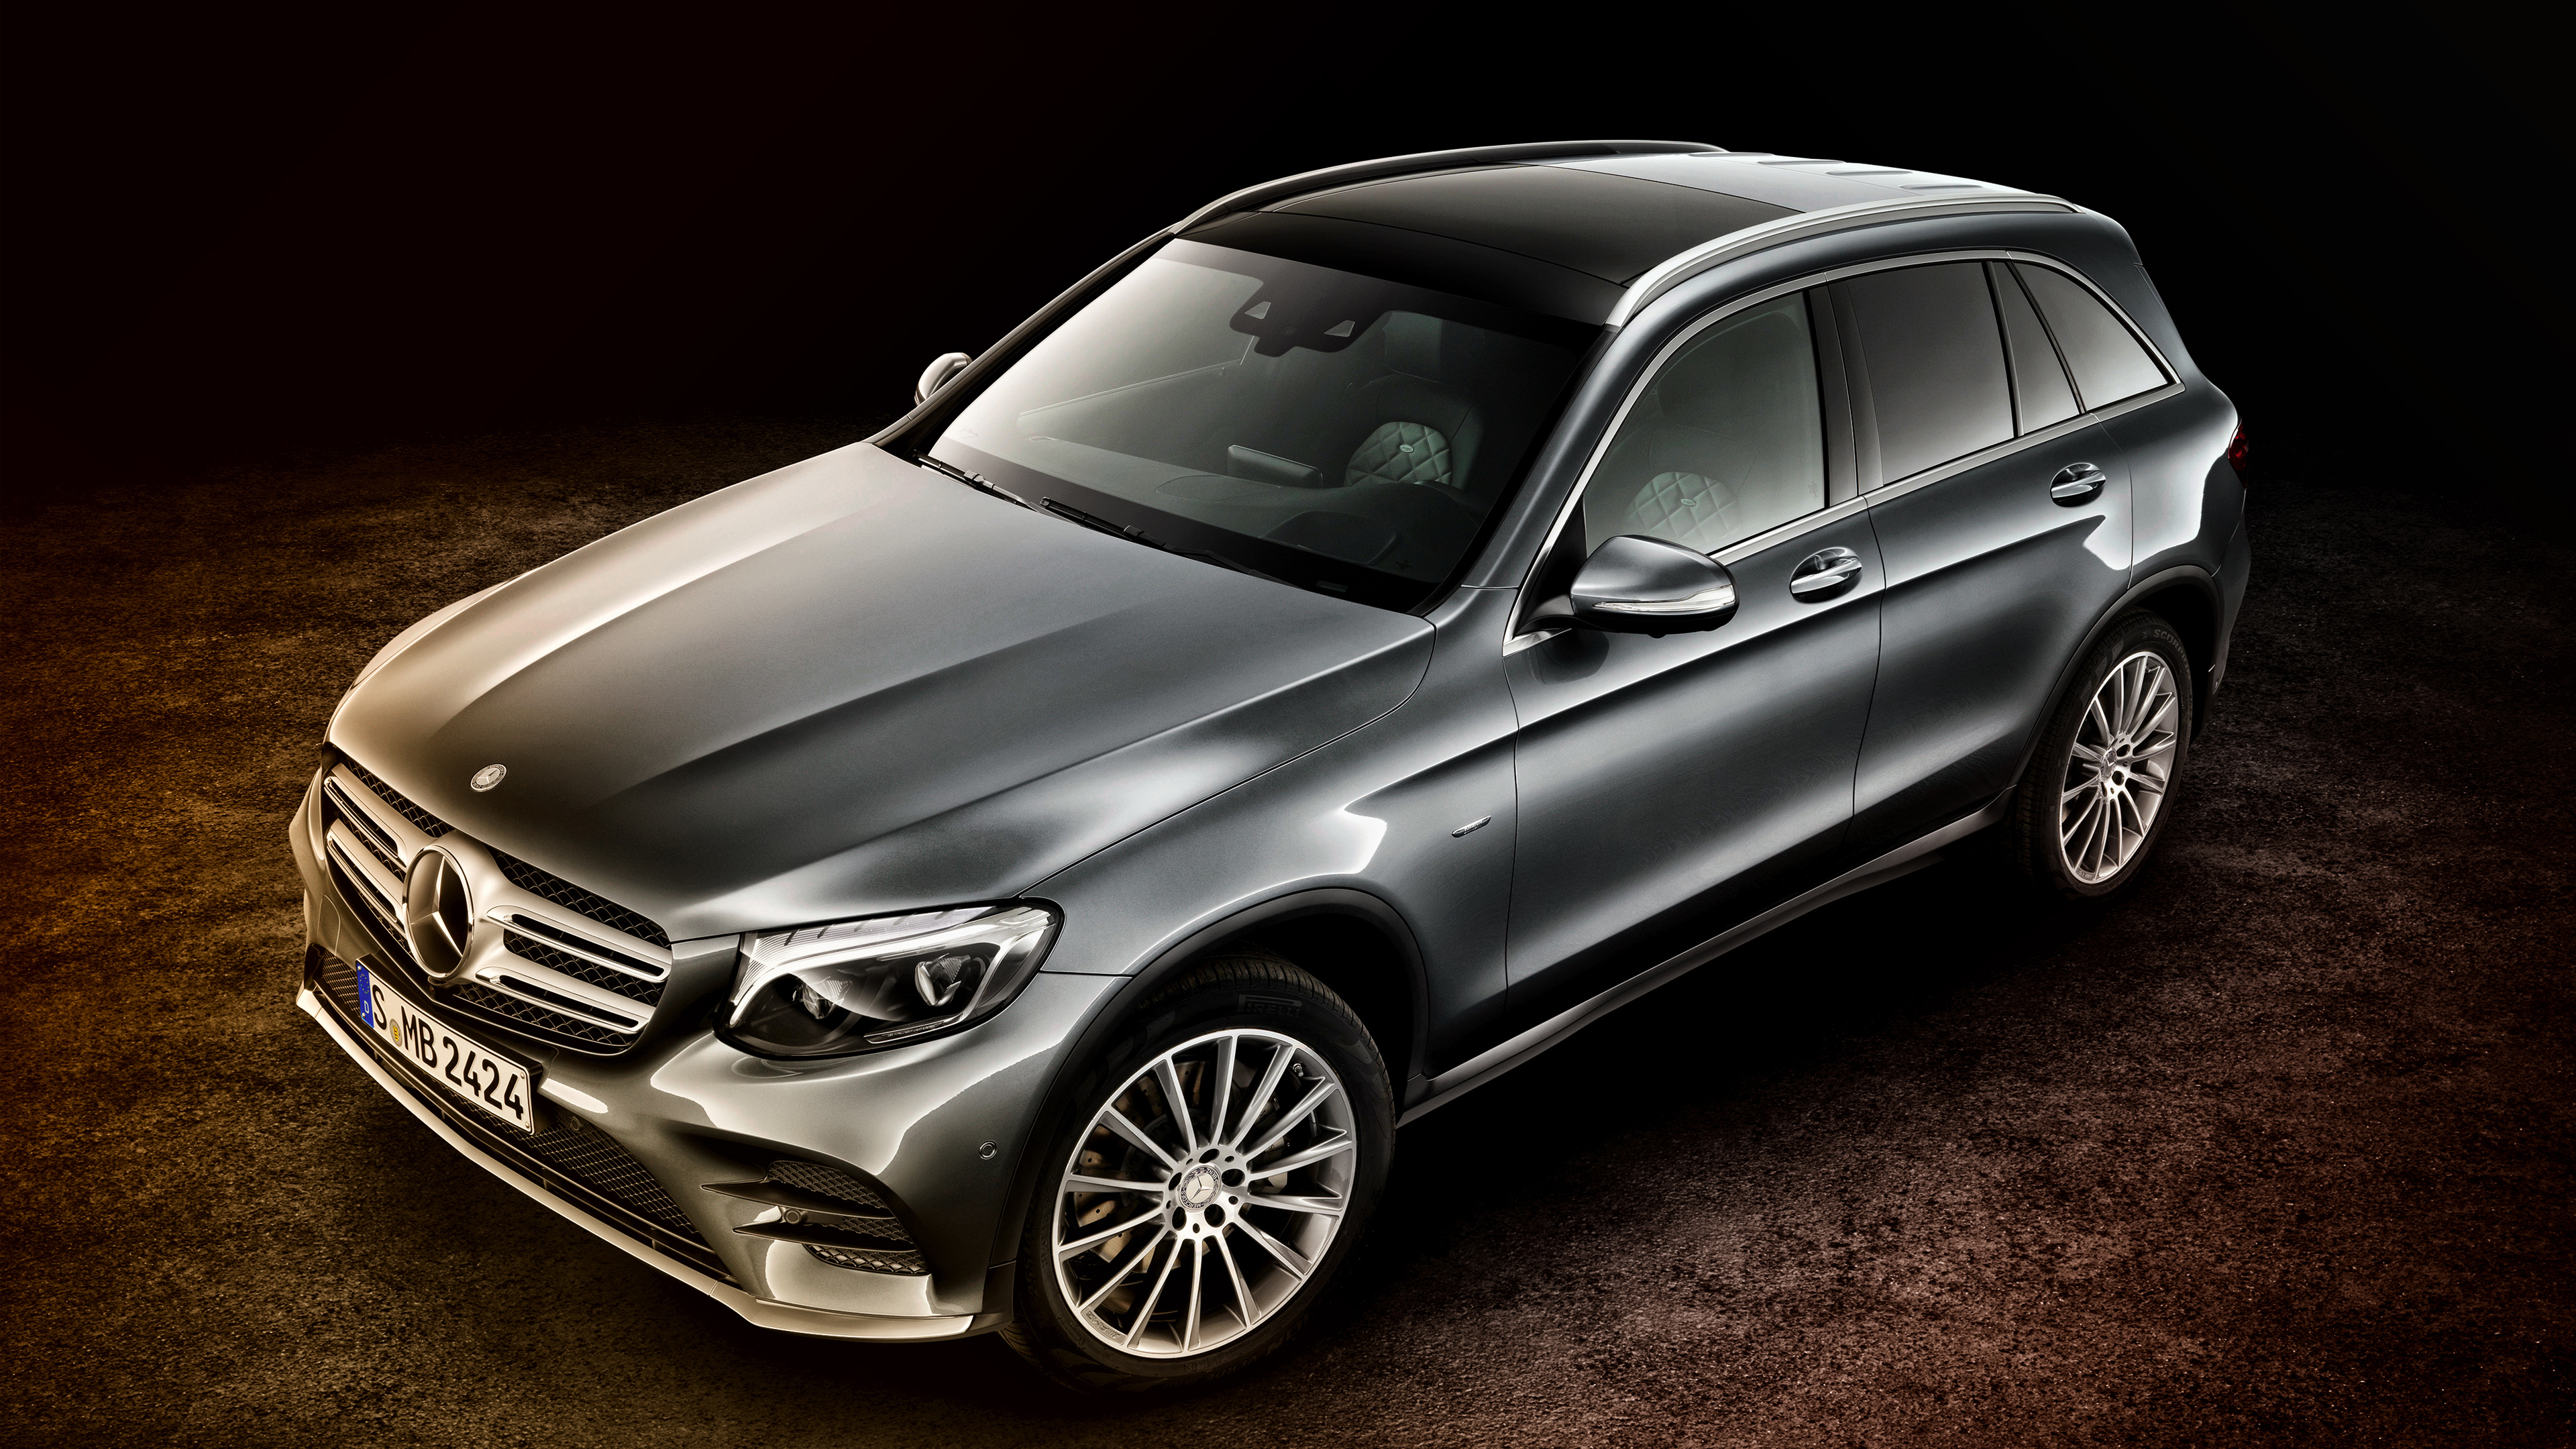 2015 mercedes benz glc 350 wallpaper hd car wallpapers id 5897. Black Bedroom Furniture Sets. Home Design Ideas